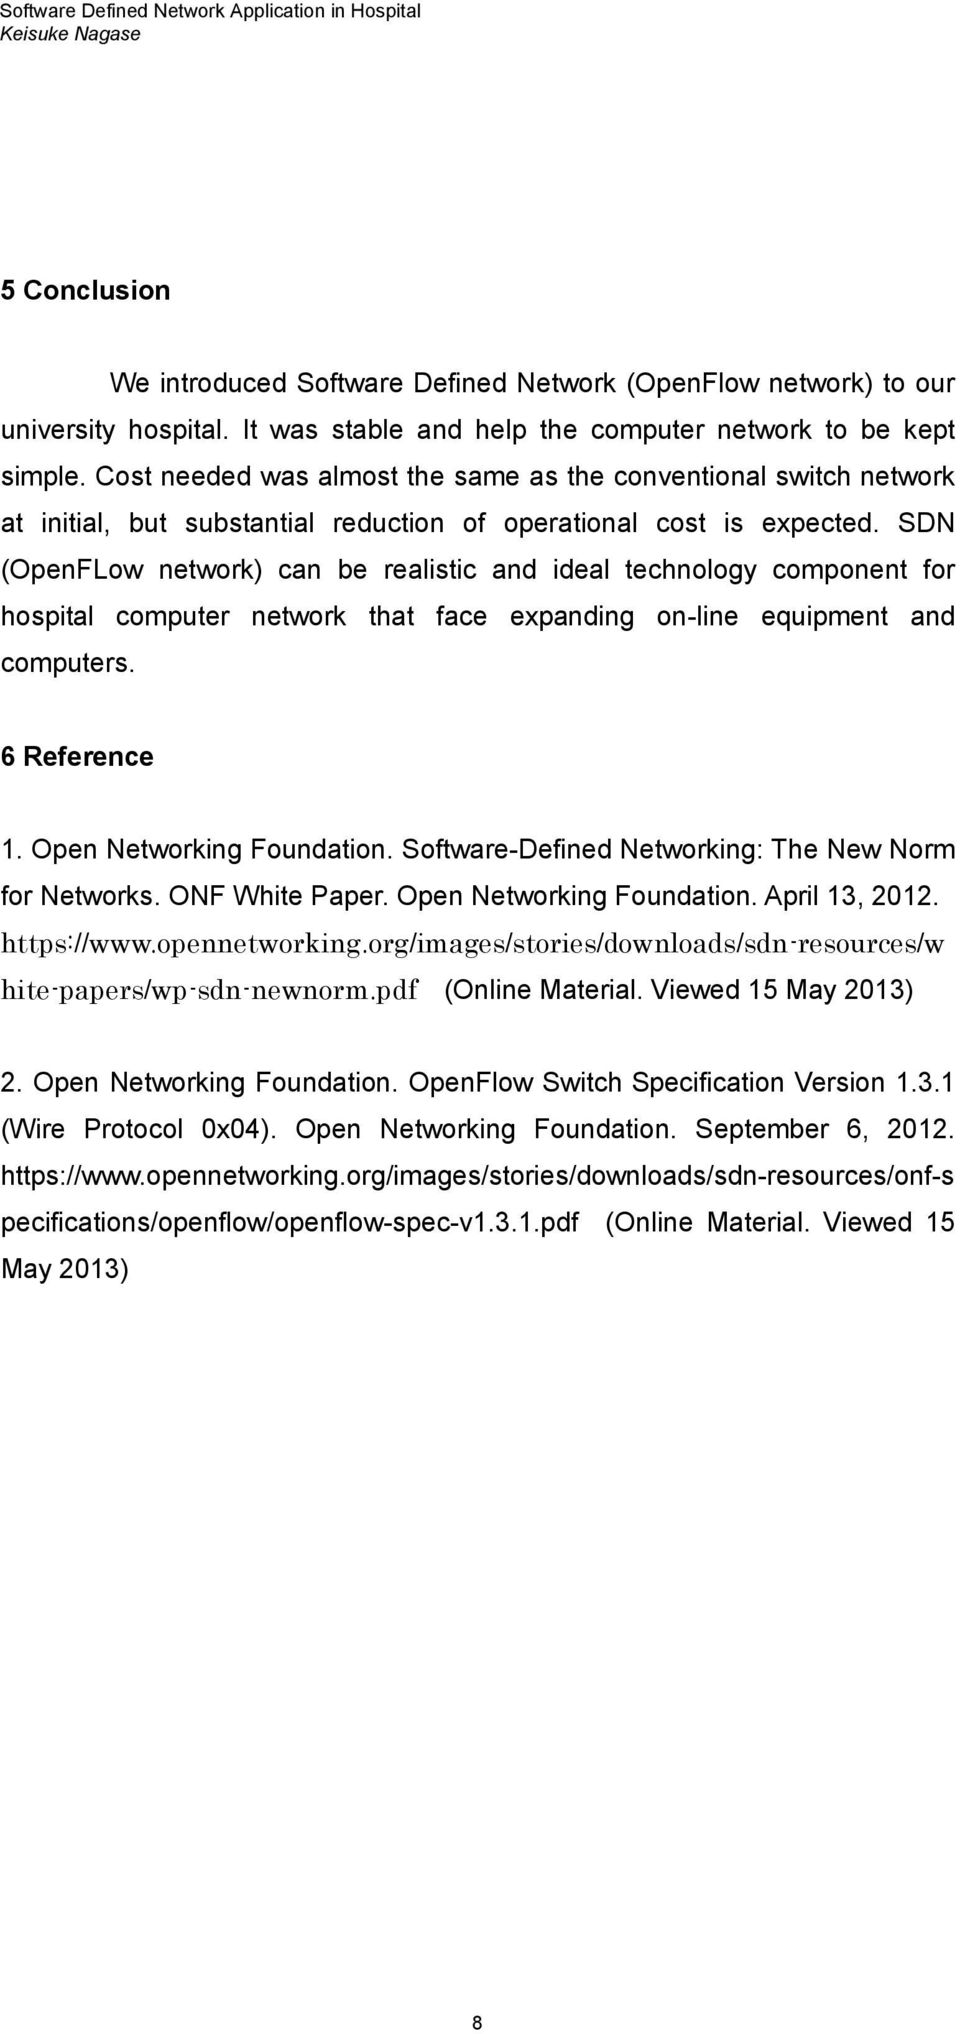 Software Defined Network Application in Hospital - PDF